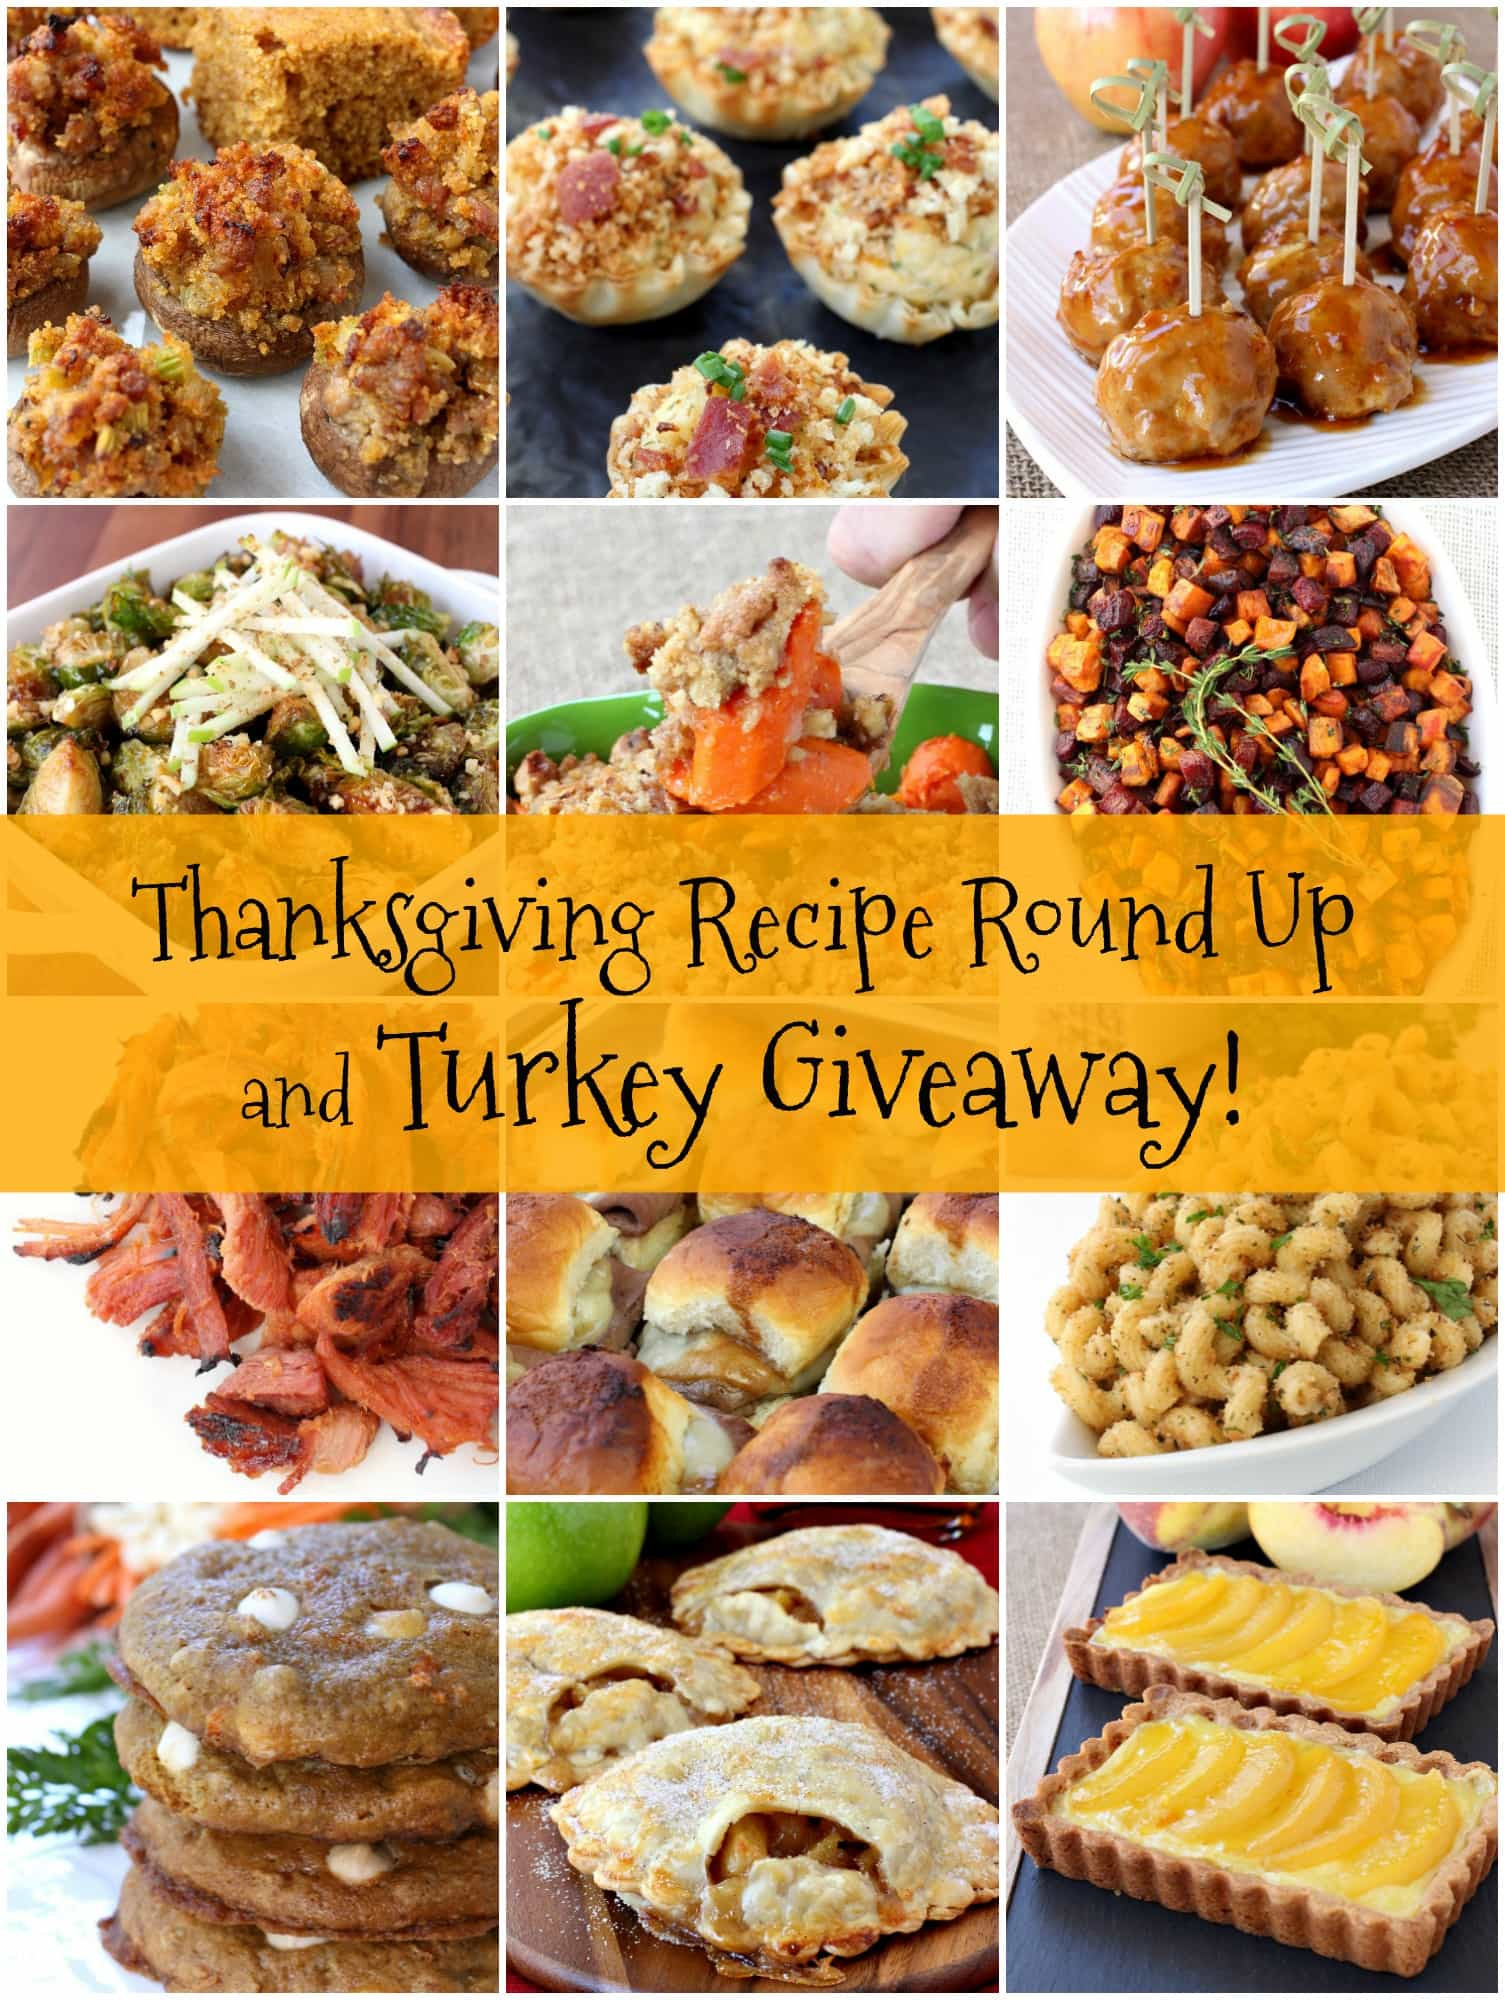 Thanksgiving Turkey Giveaway  Thanksgiving Recipe Round Up and Turkey Giveaway